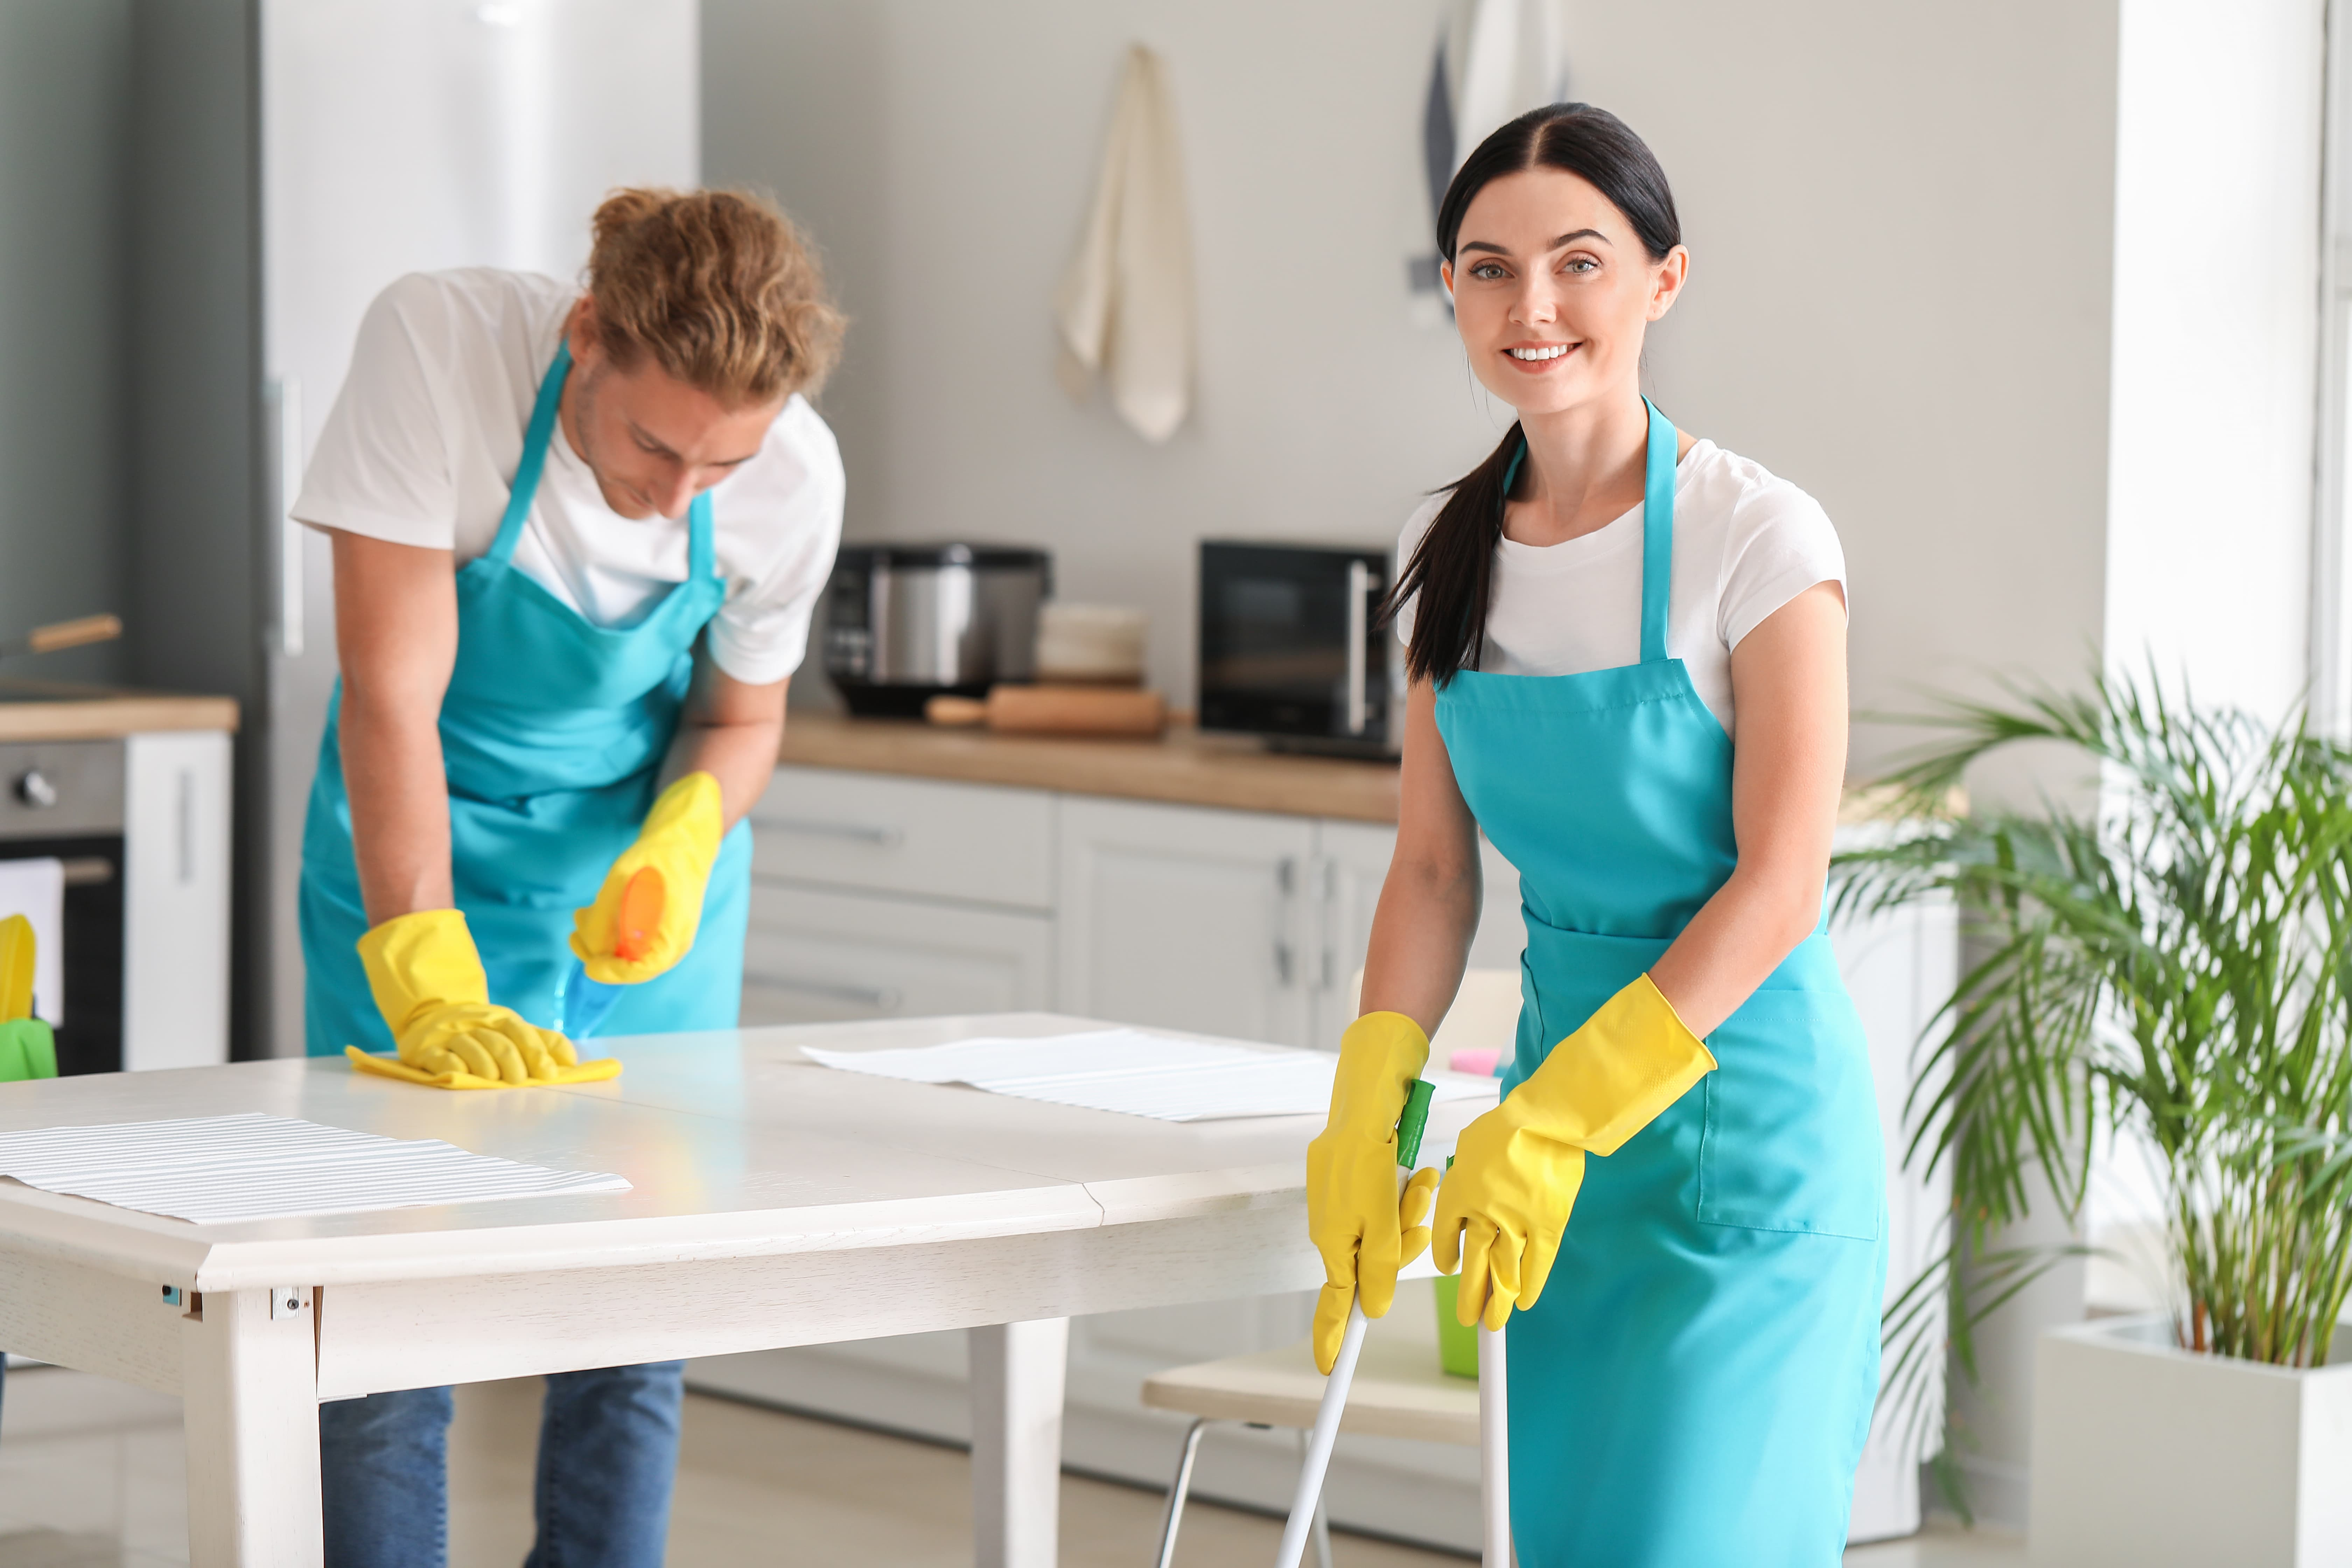 hings you should know before hiring a cleaning service